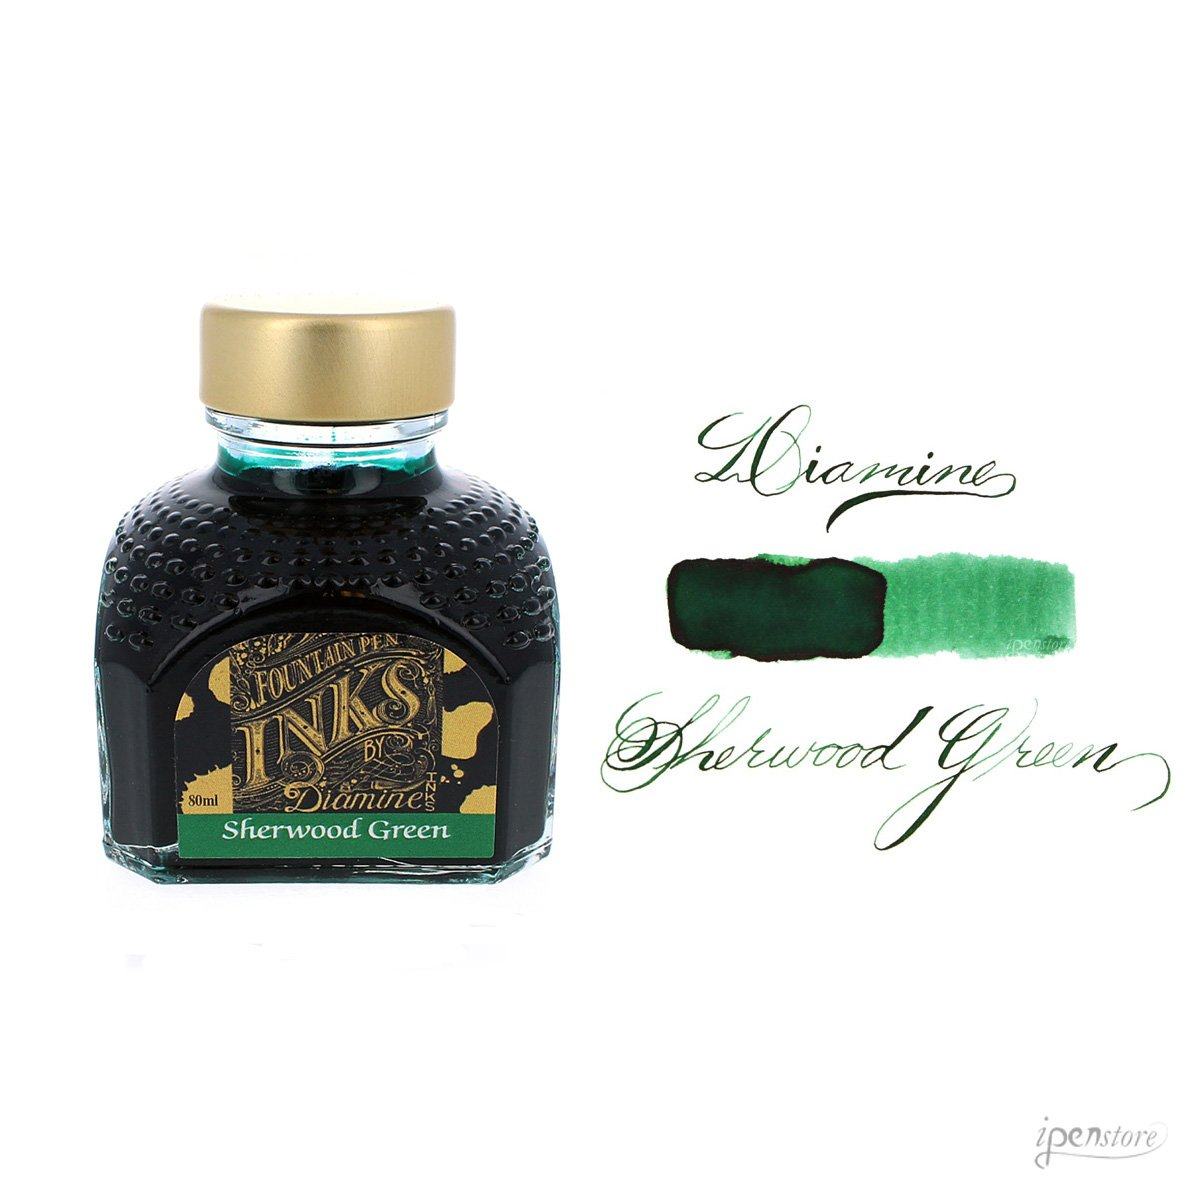 Diamine 80ml Sherwood Green fountain pen ink bottle